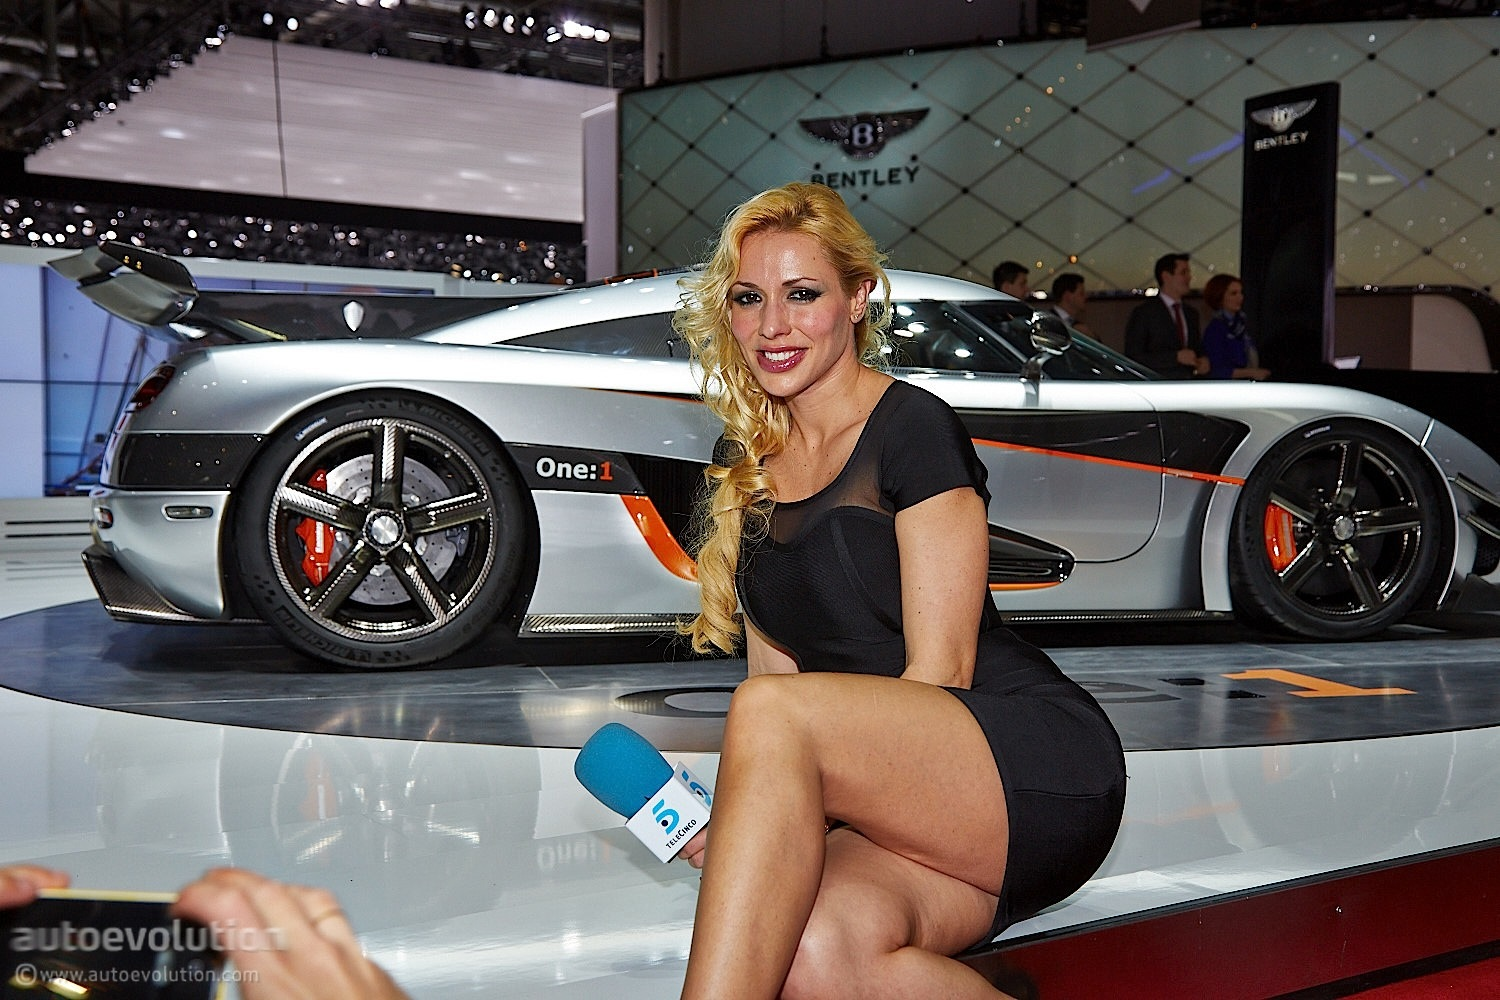 Hot girls of geneva 2014 live photos autoevolution